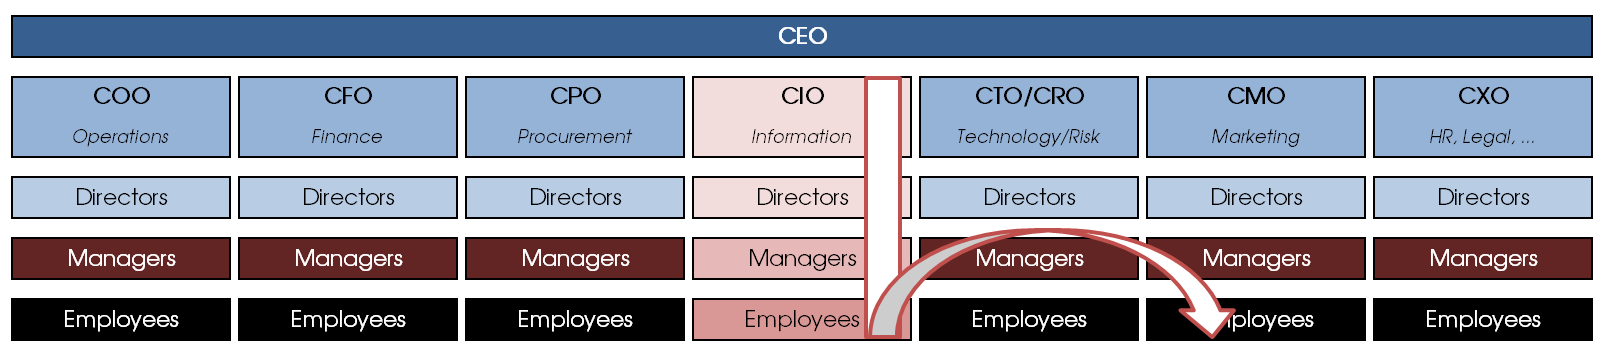 The inverted-T model of data governance (DG): a DG office is established top-down in one area and then spreads out to other areas, where it reaches the respective executives by word of mouth from the bottom up